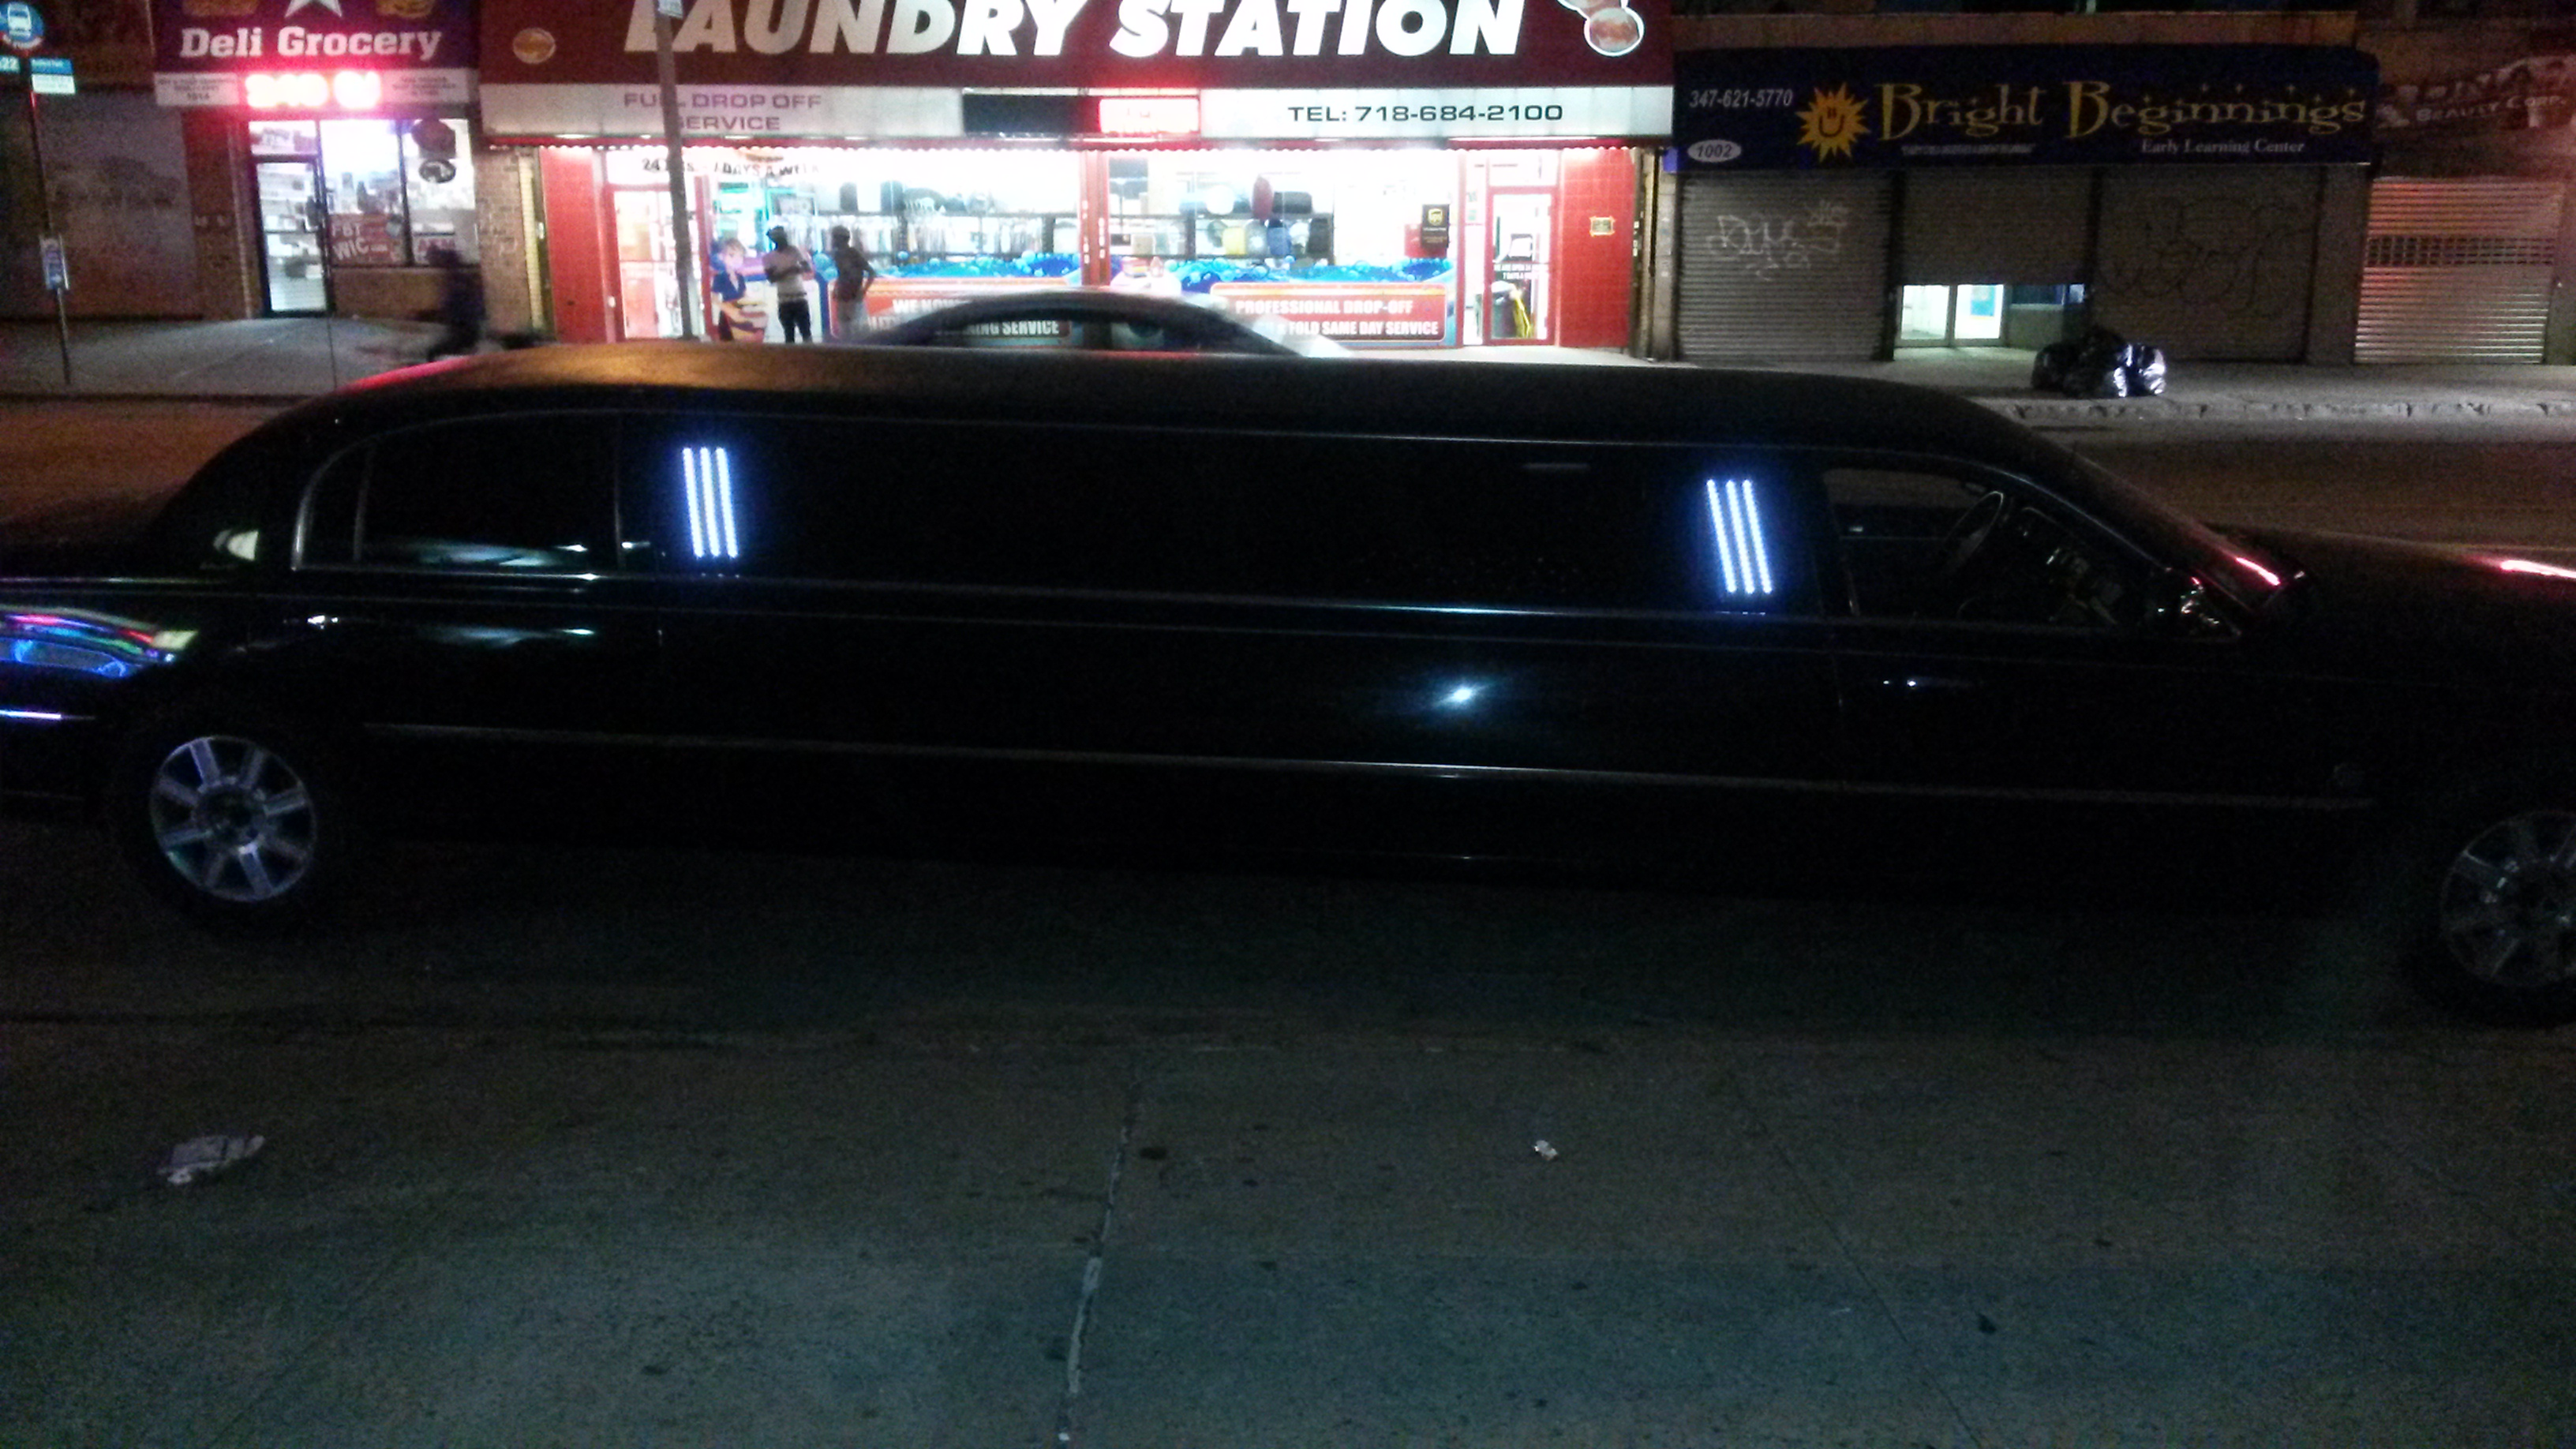 Ucabing Taxi Car Service and Limo Service in Bronx NY